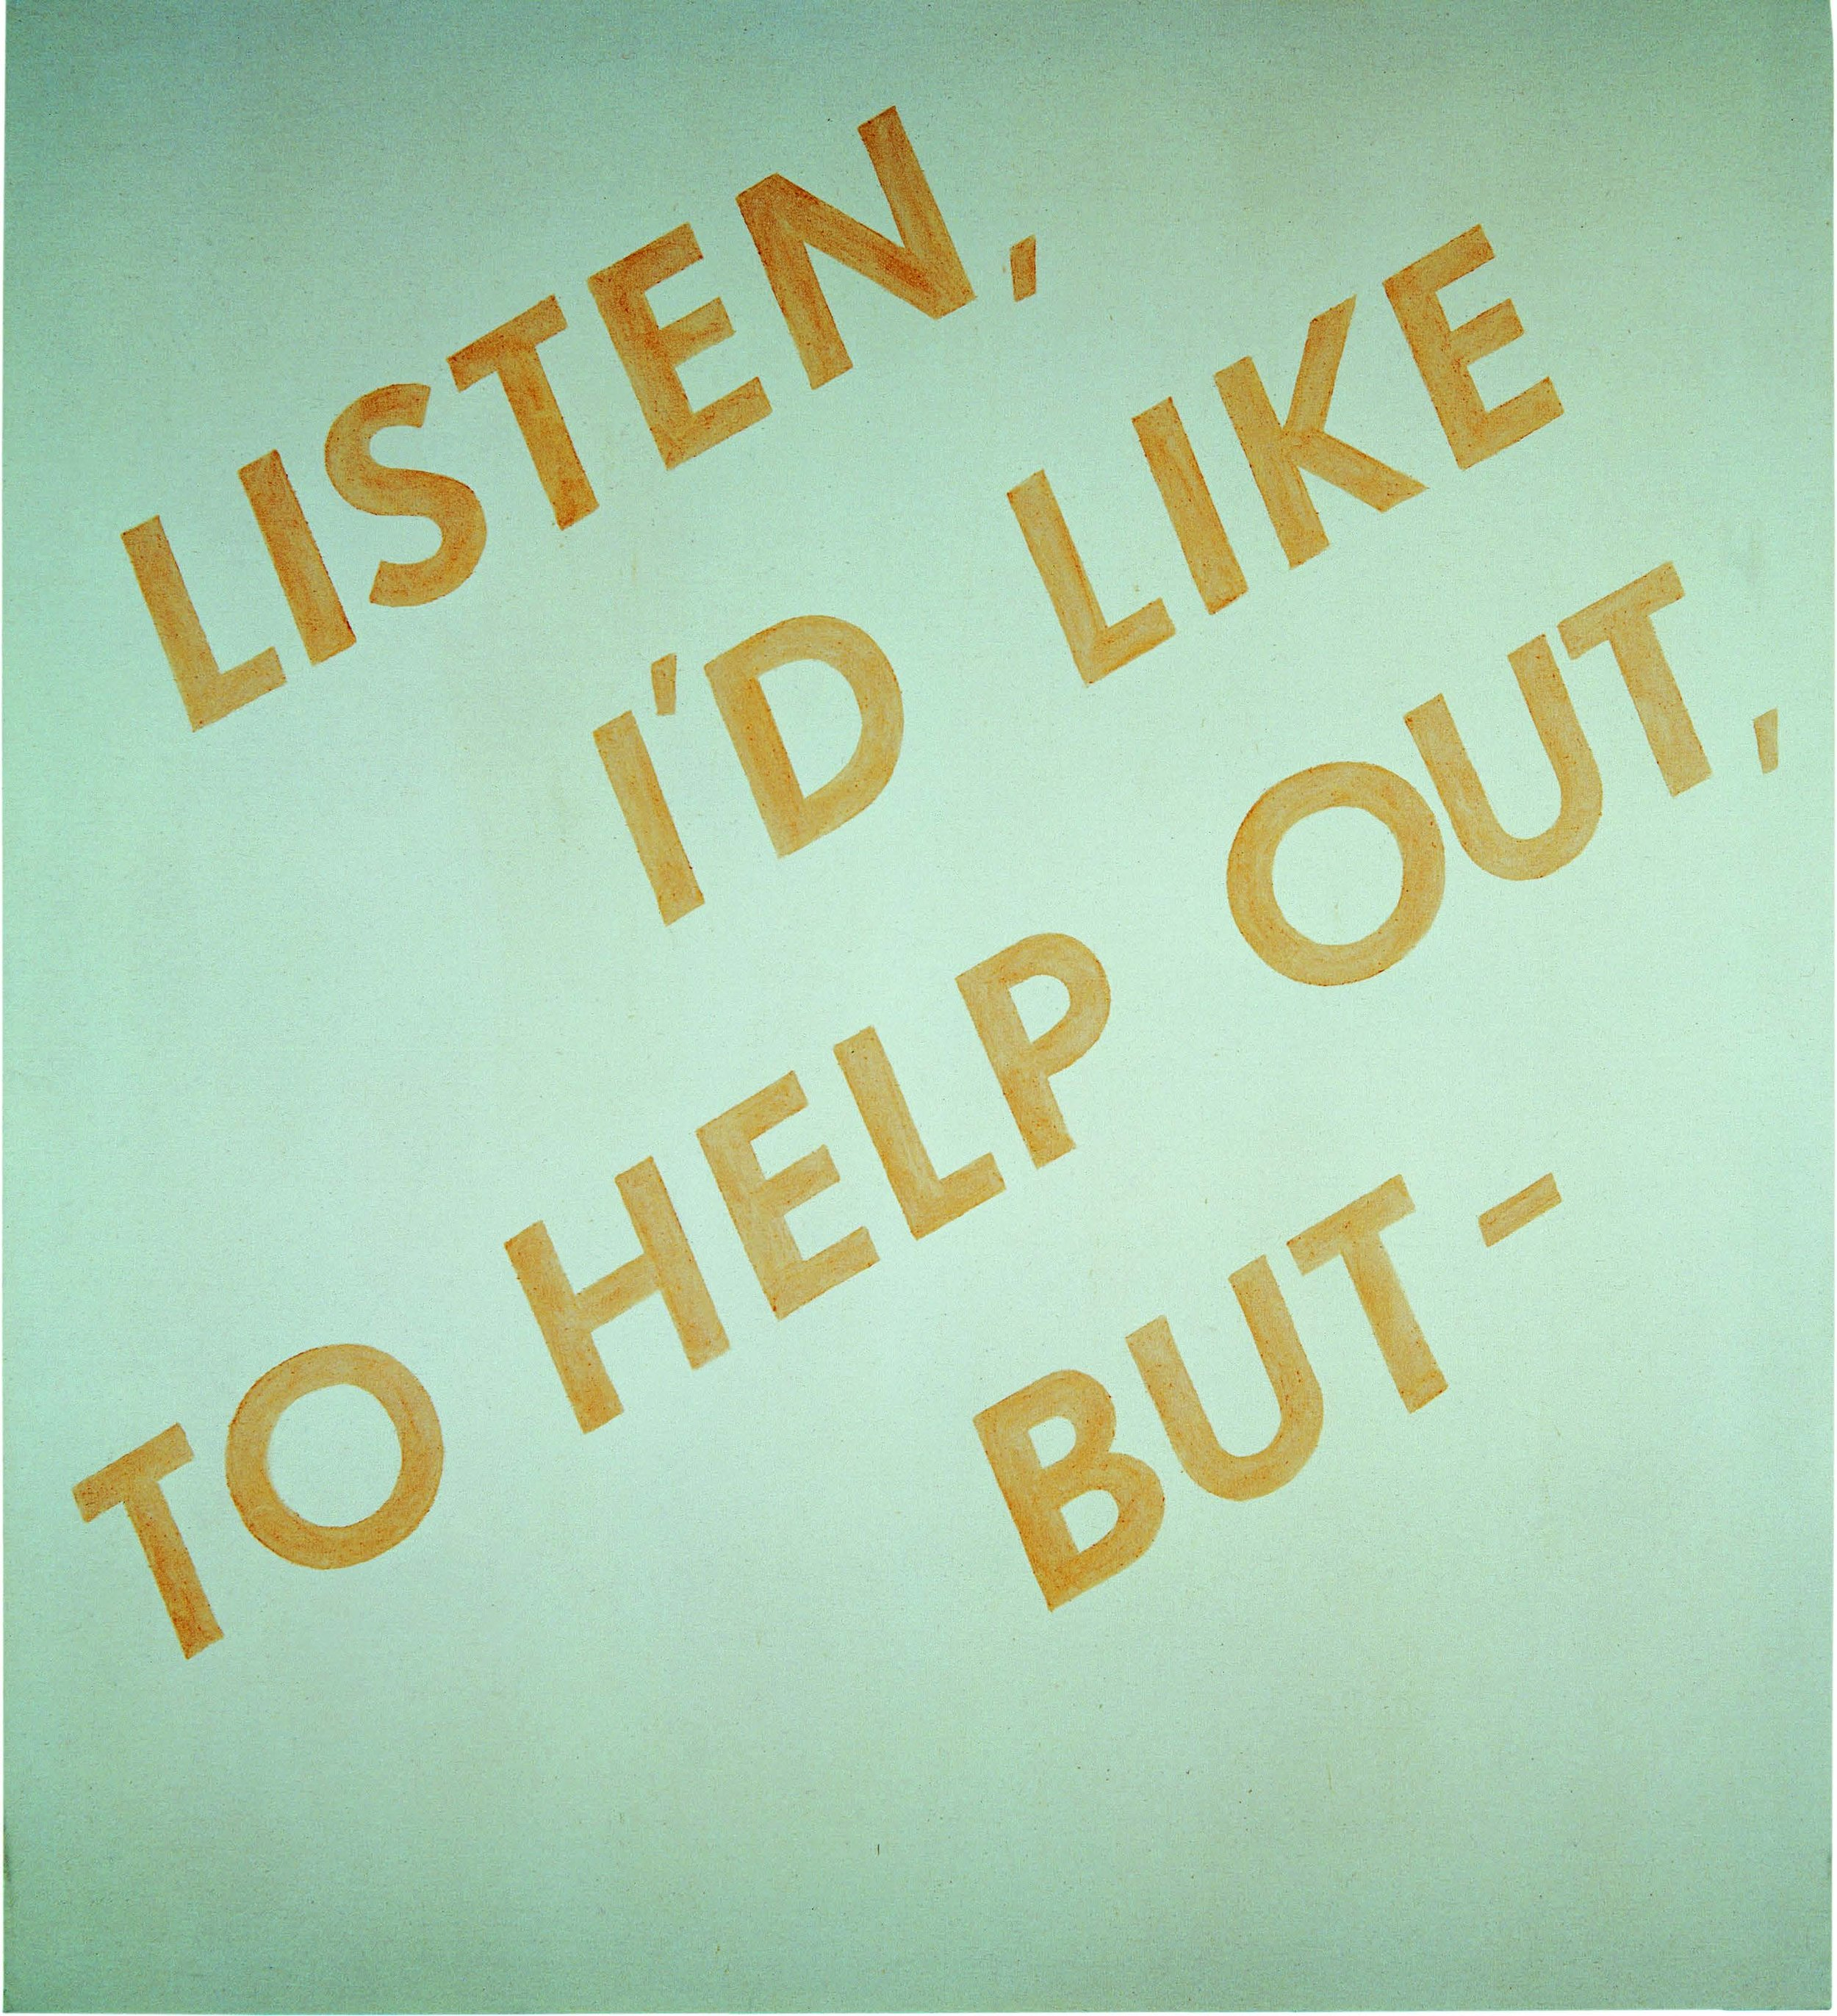 LISTEN, I'D LIKE TO HELP OUT, BUT–, 1973, oil and ketchup on canvas, 60 x 54 inches 96 courtesy of Gagosian Gallery. © Ed Ruscha